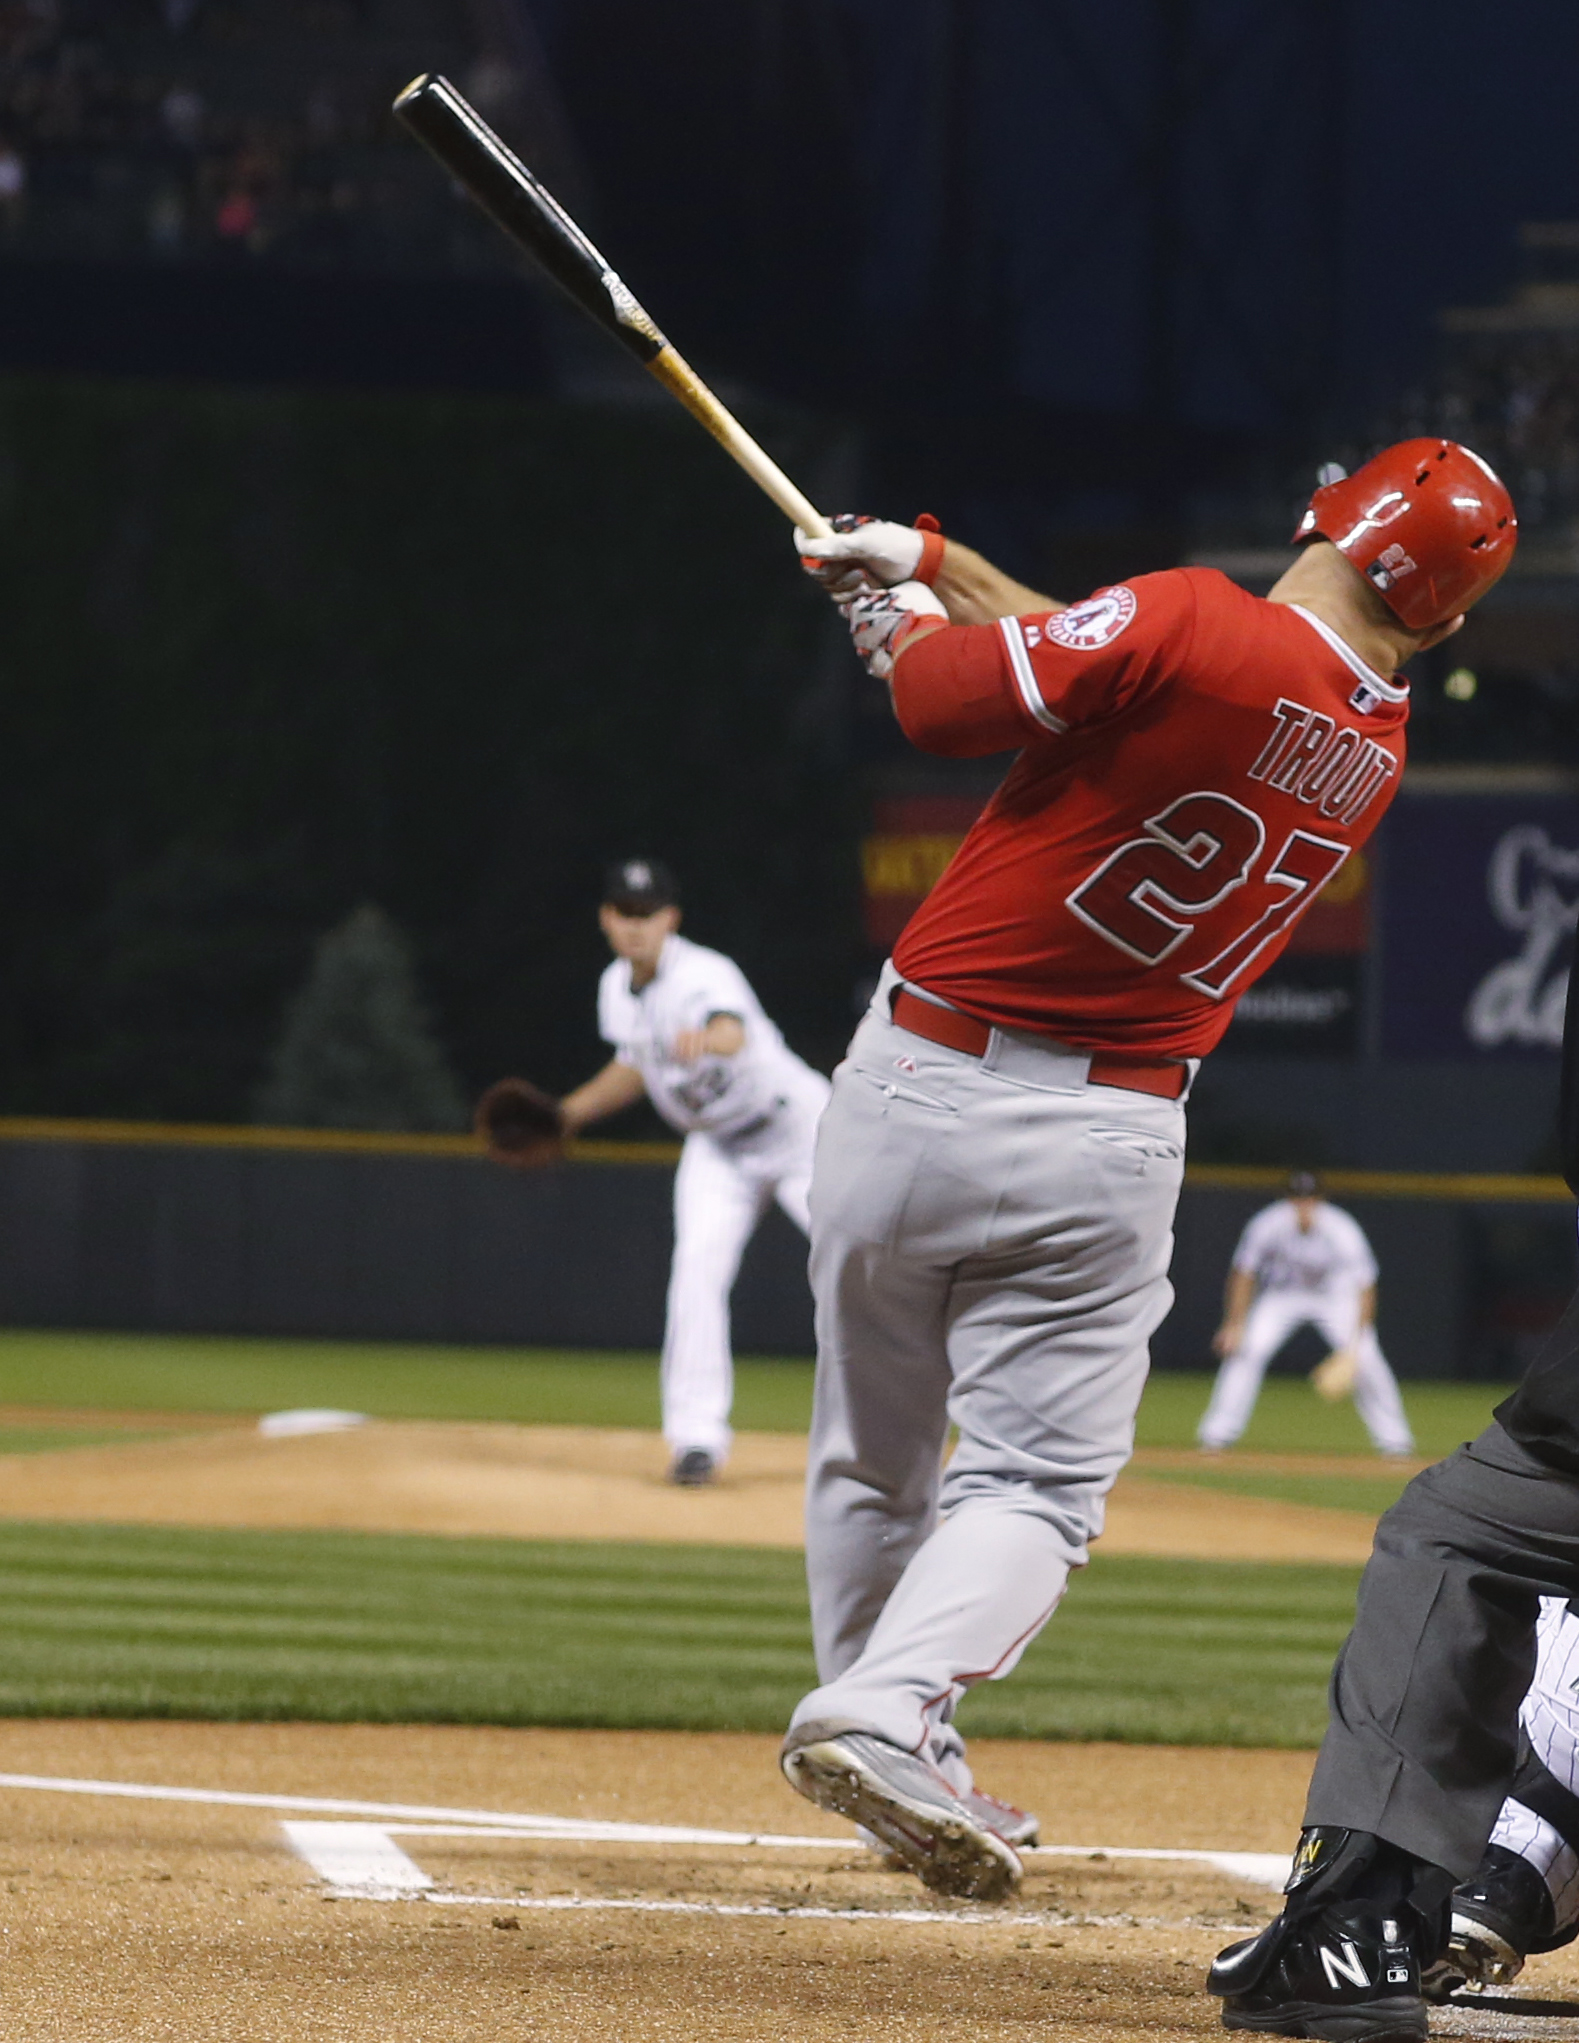 Los Angeles Angels' Mike Trout follows through on a solo home run off Colorado Rockies starting pitcher Chris Rusin during the first inning of a baseball game Wednesday, July 8, 2015, in Denver. (AP Photo/David Zalubowski)